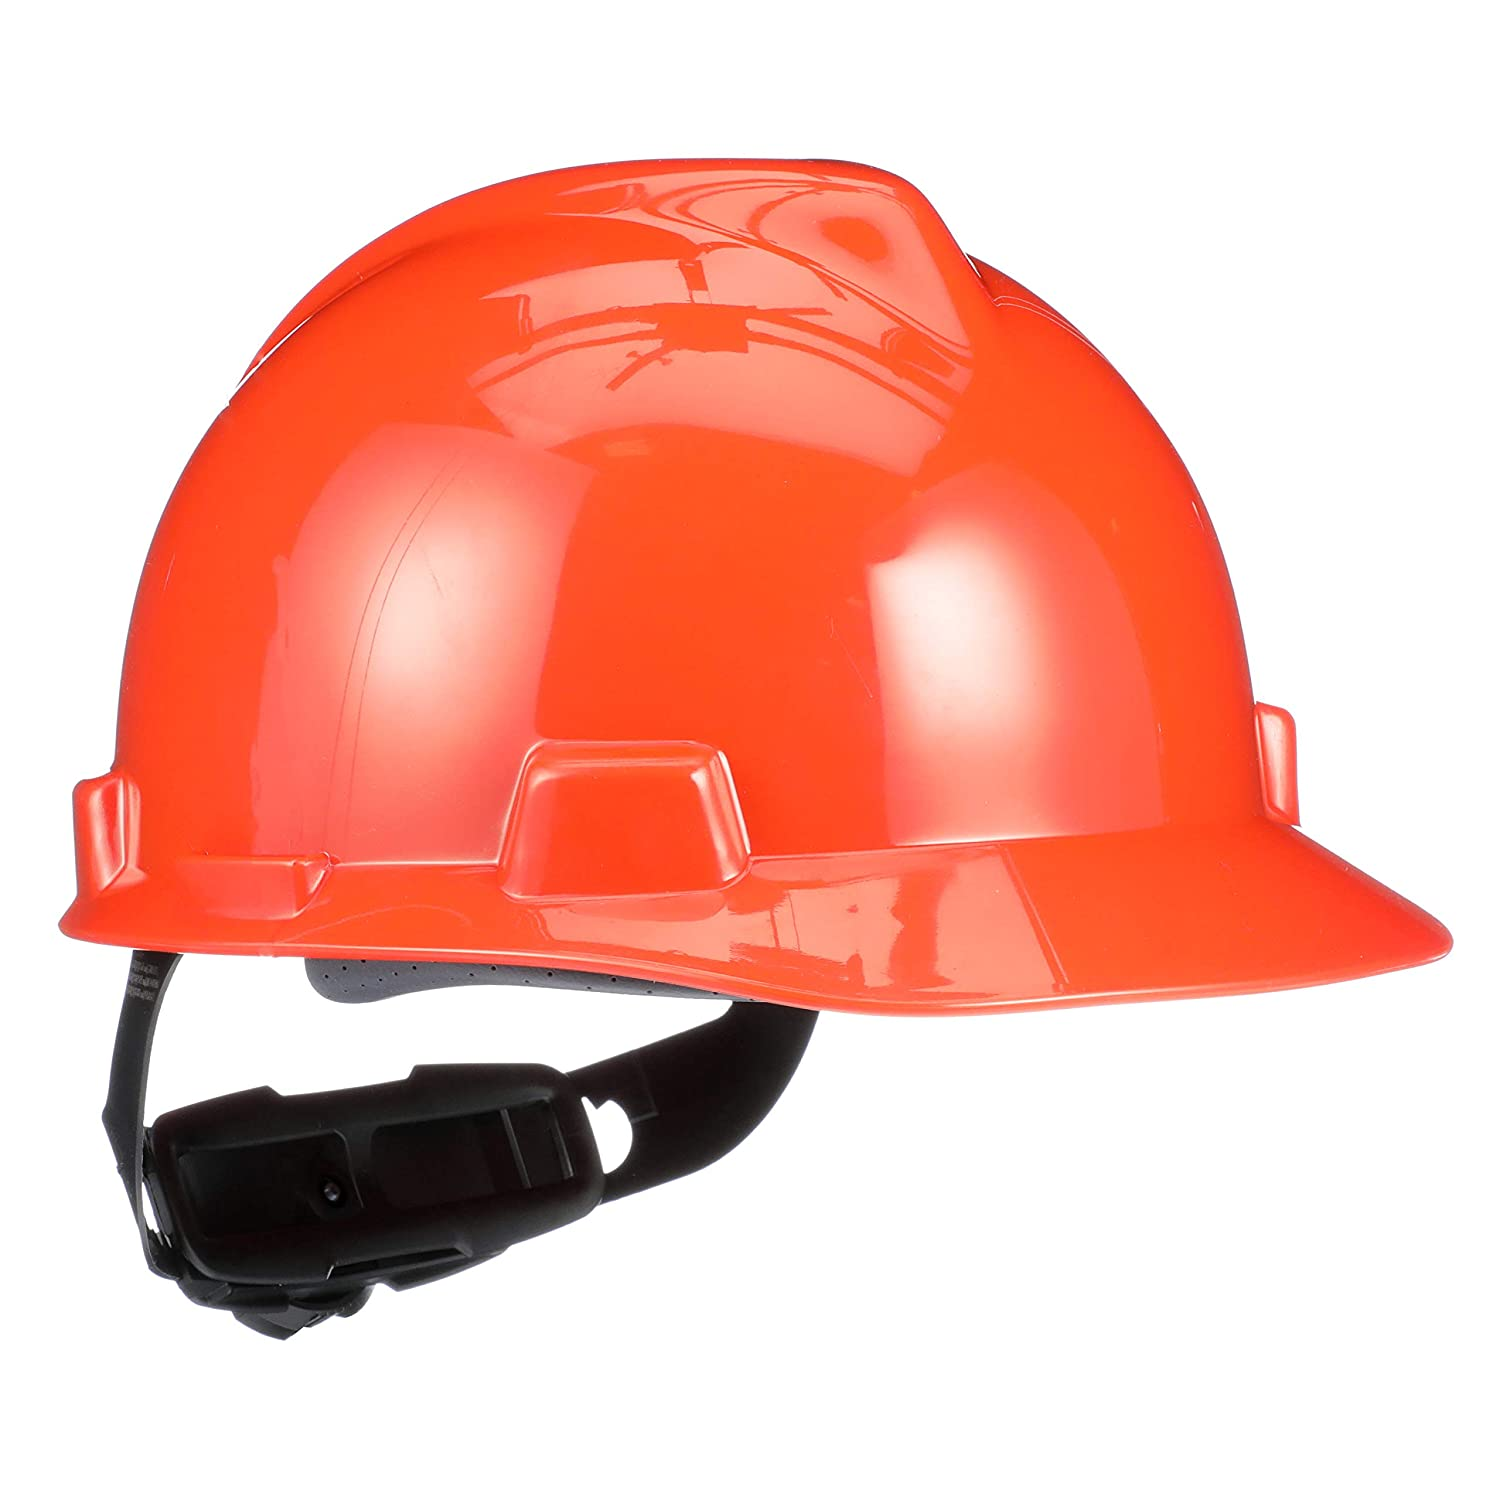 B0002ZIA8C MSA 475361 V-Gard Hard Hat Front Brim with Ratchet Suspension, Standard, Orange 71r1IX8ju0L